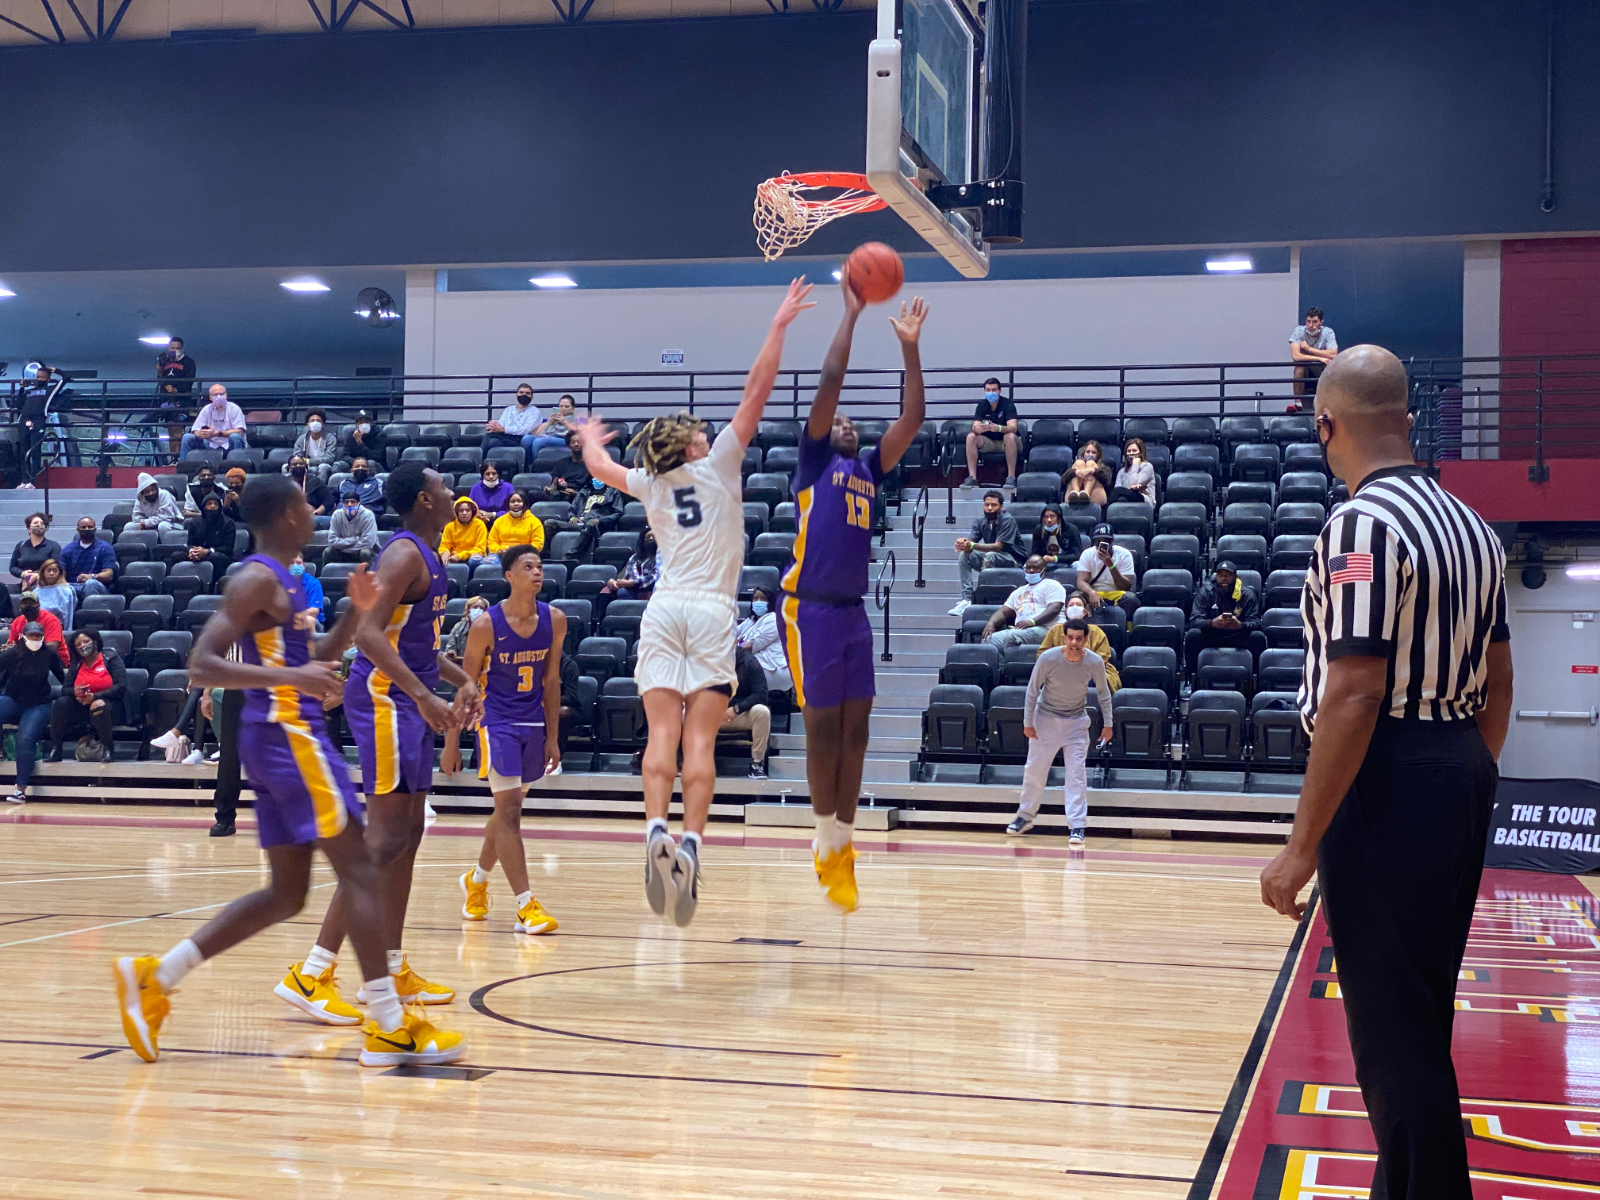 FESTSGIVING Day 1: Purple Knights take the win over Zachary